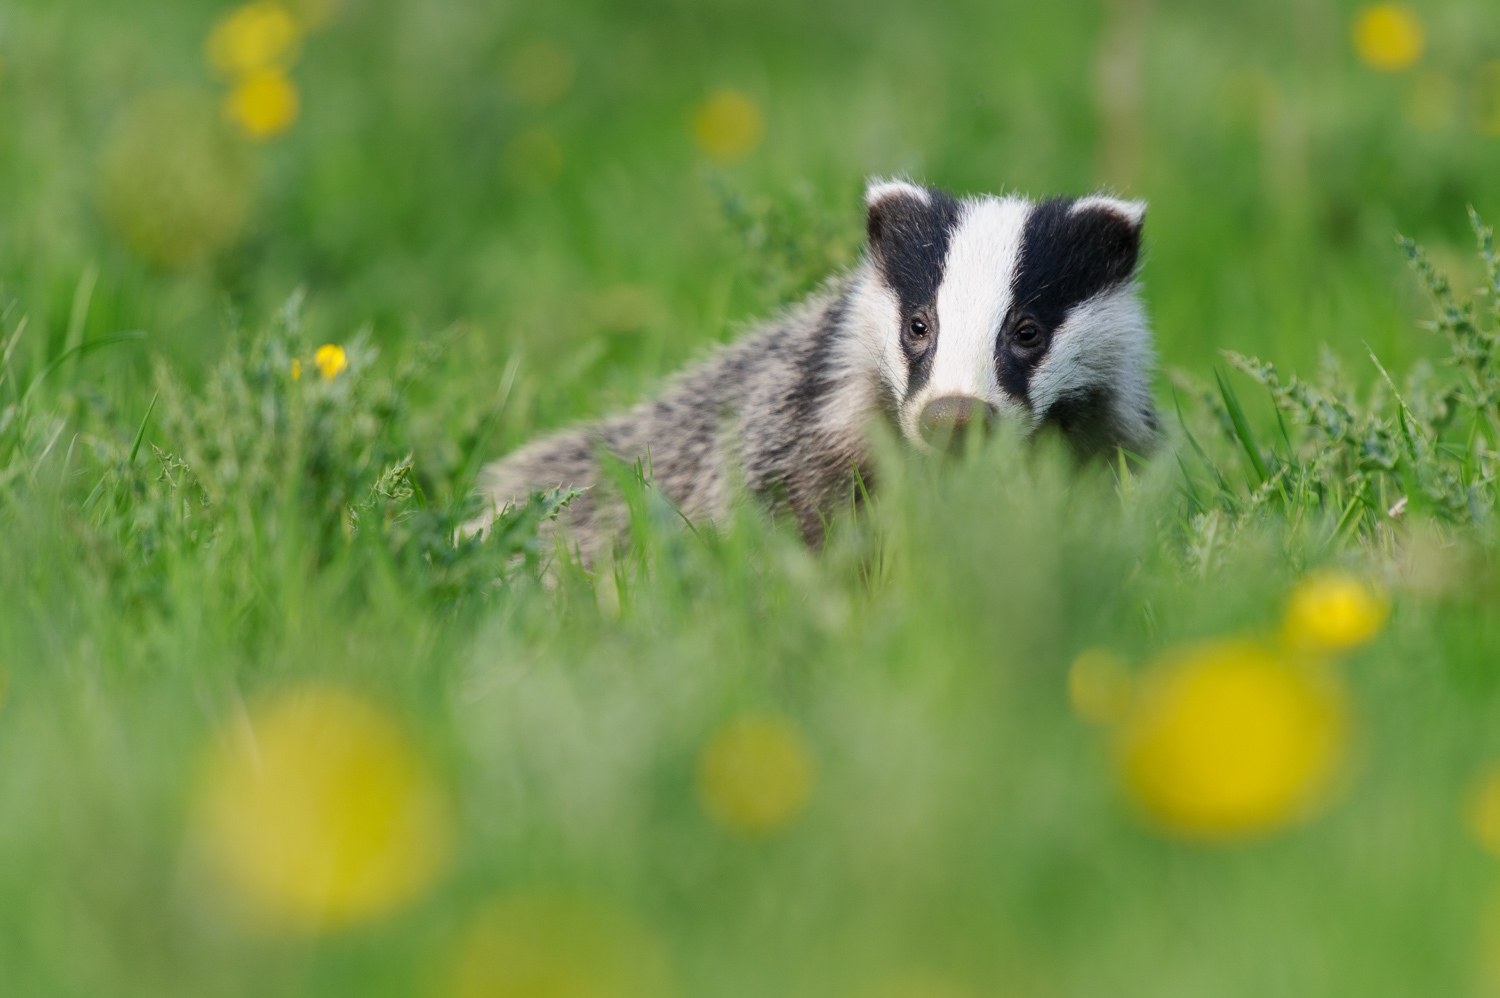 Badger and Dandelions